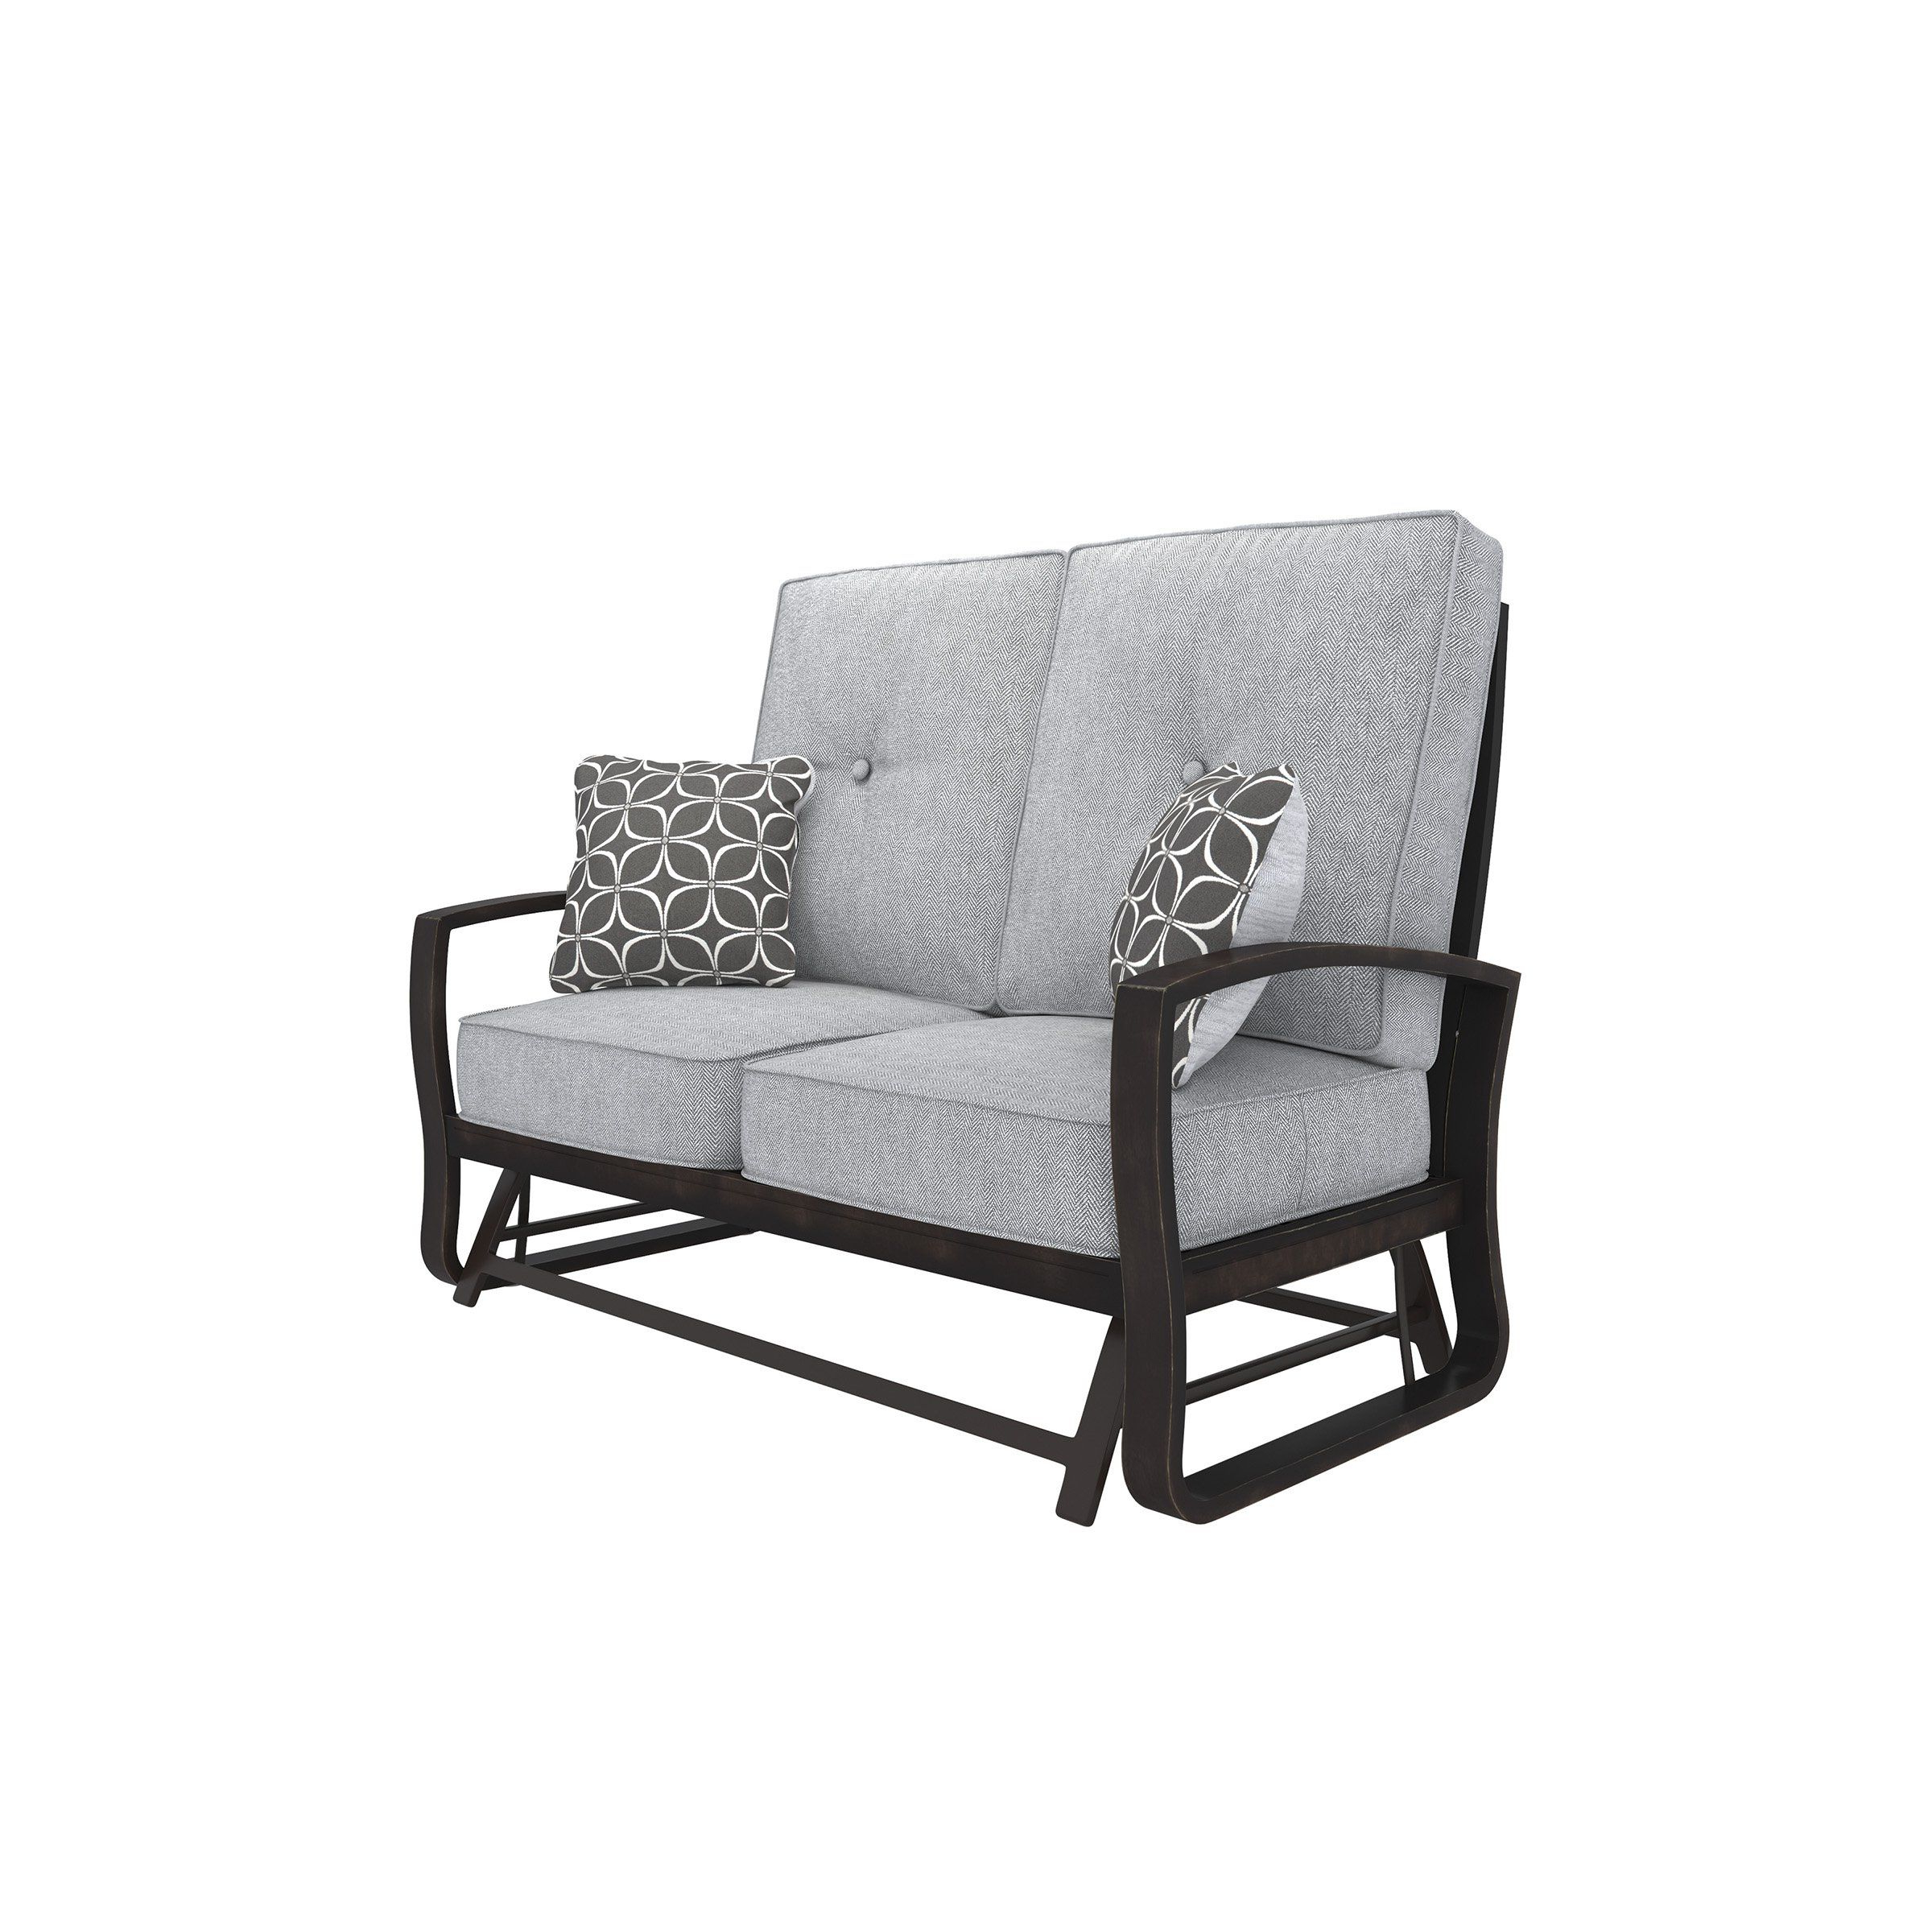 Famous Loveseat Glider Benches With Cushions Within Signature Design P414 835 Castle Island Brown Gray Outdoor (Gallery 4 of 30)